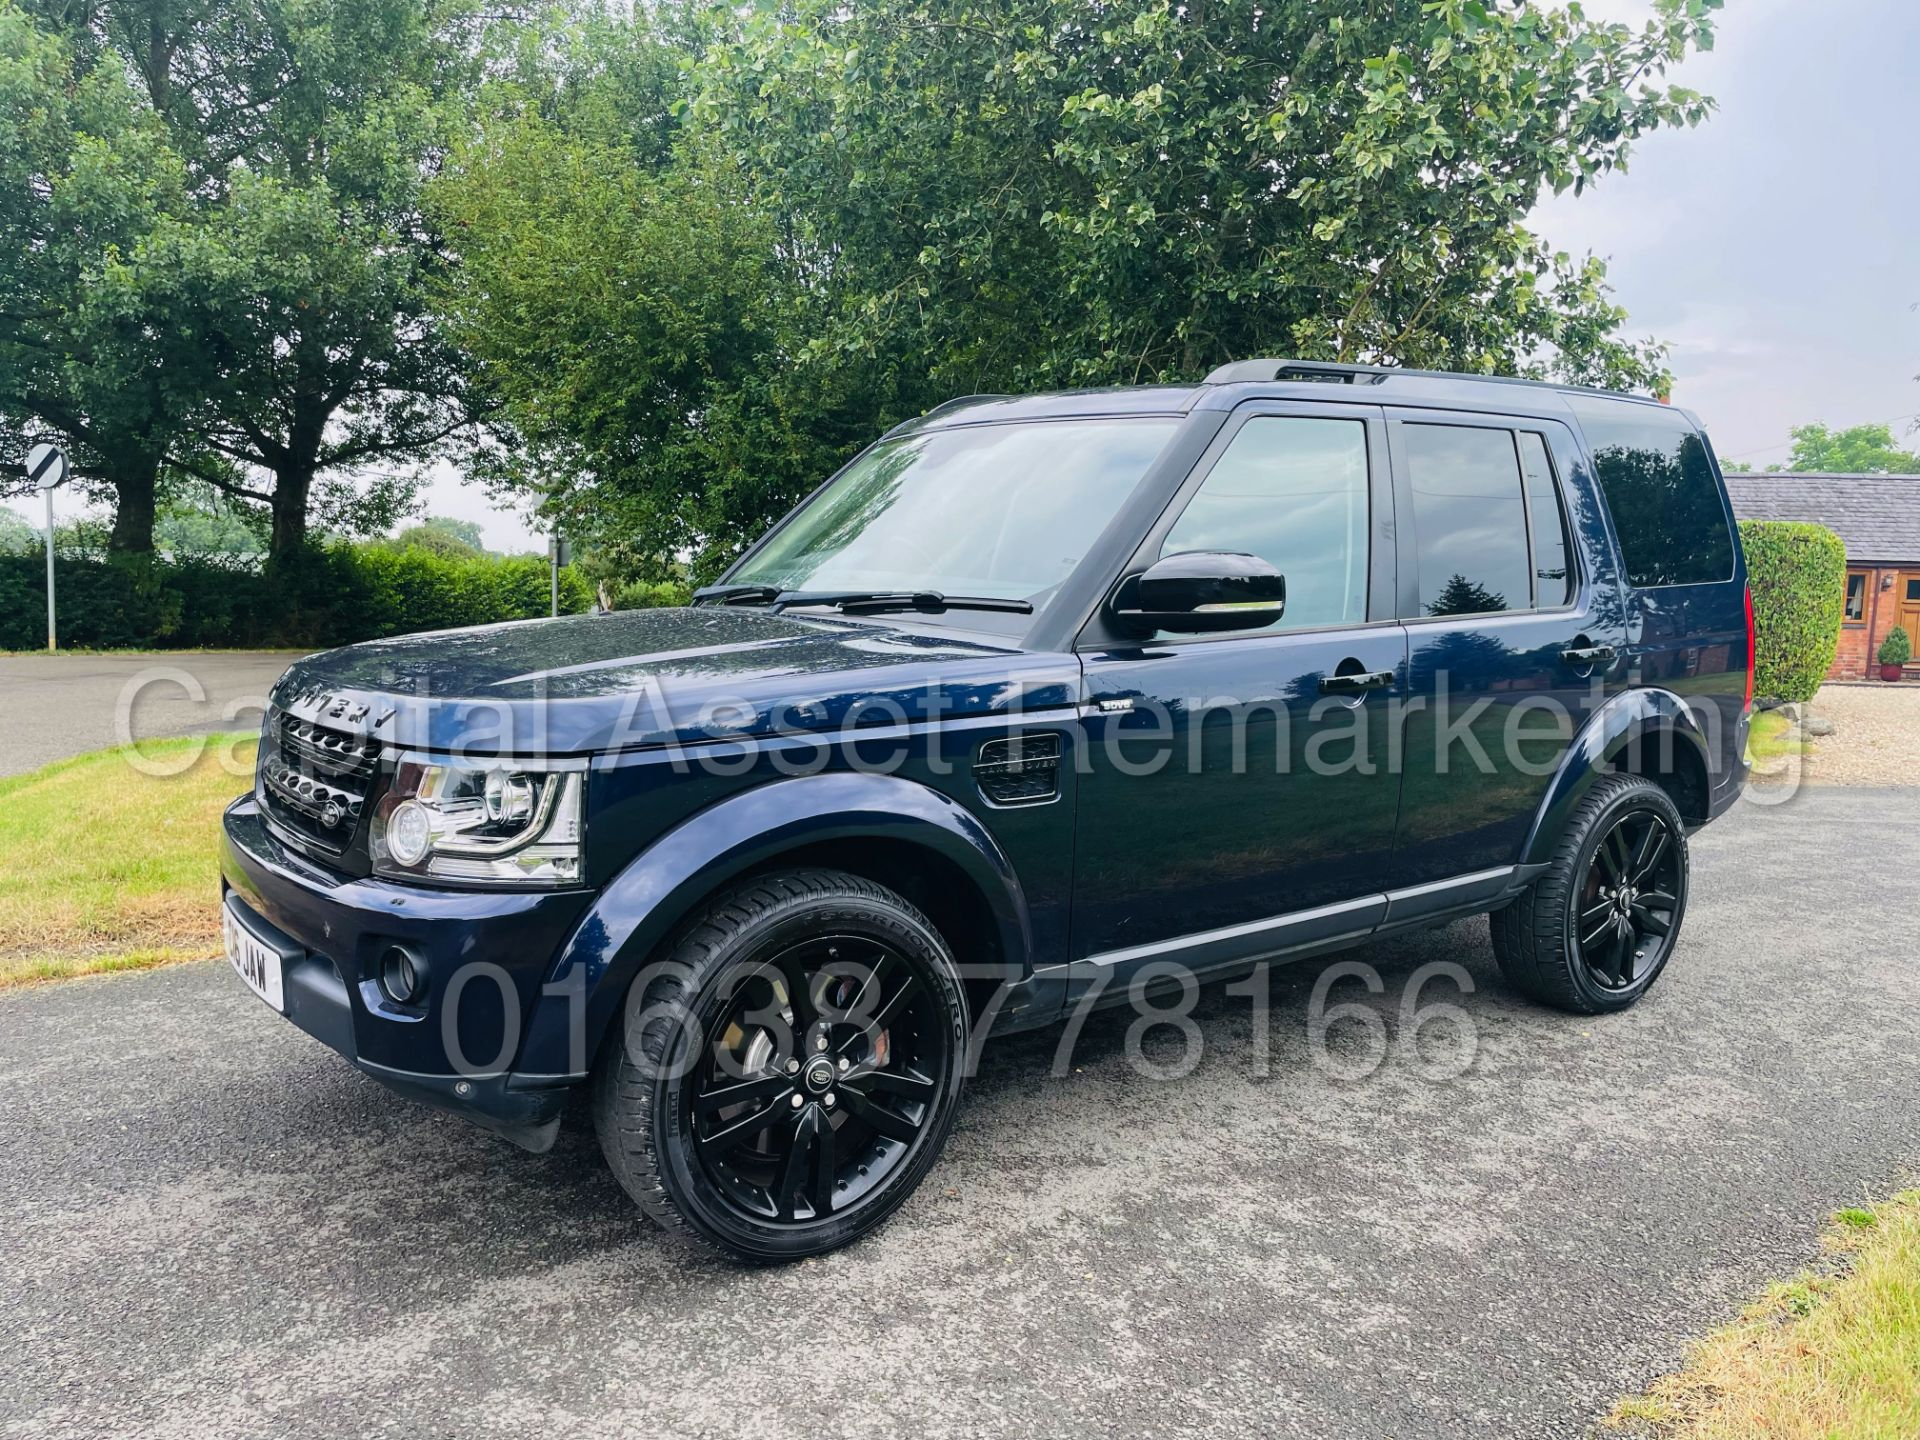 LAND ROVER DISCOVERY 4 *HSE* 7 SEATER SUV (2014 - NEW MODEL) '3.0 SDV6 - 255 BHP - 8 SPEED AUTO' - Image 6 of 61